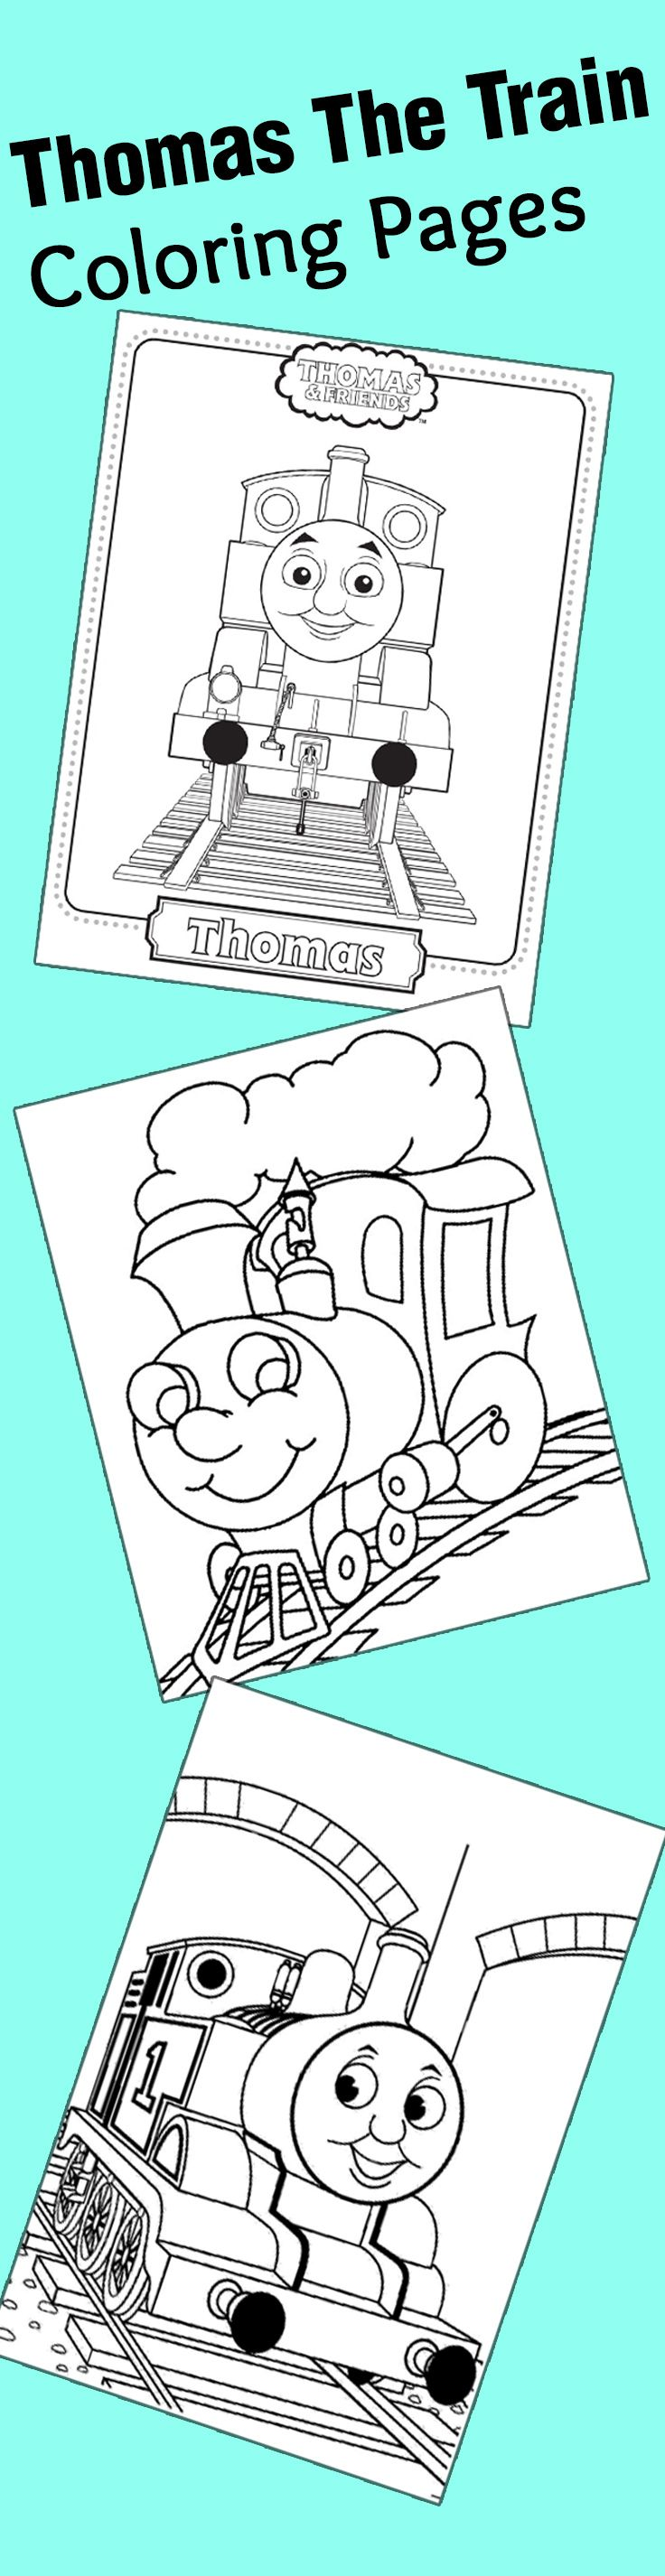 Top 20 Free Printable Thomas The Train Coloring Pages Online in 2018 ...